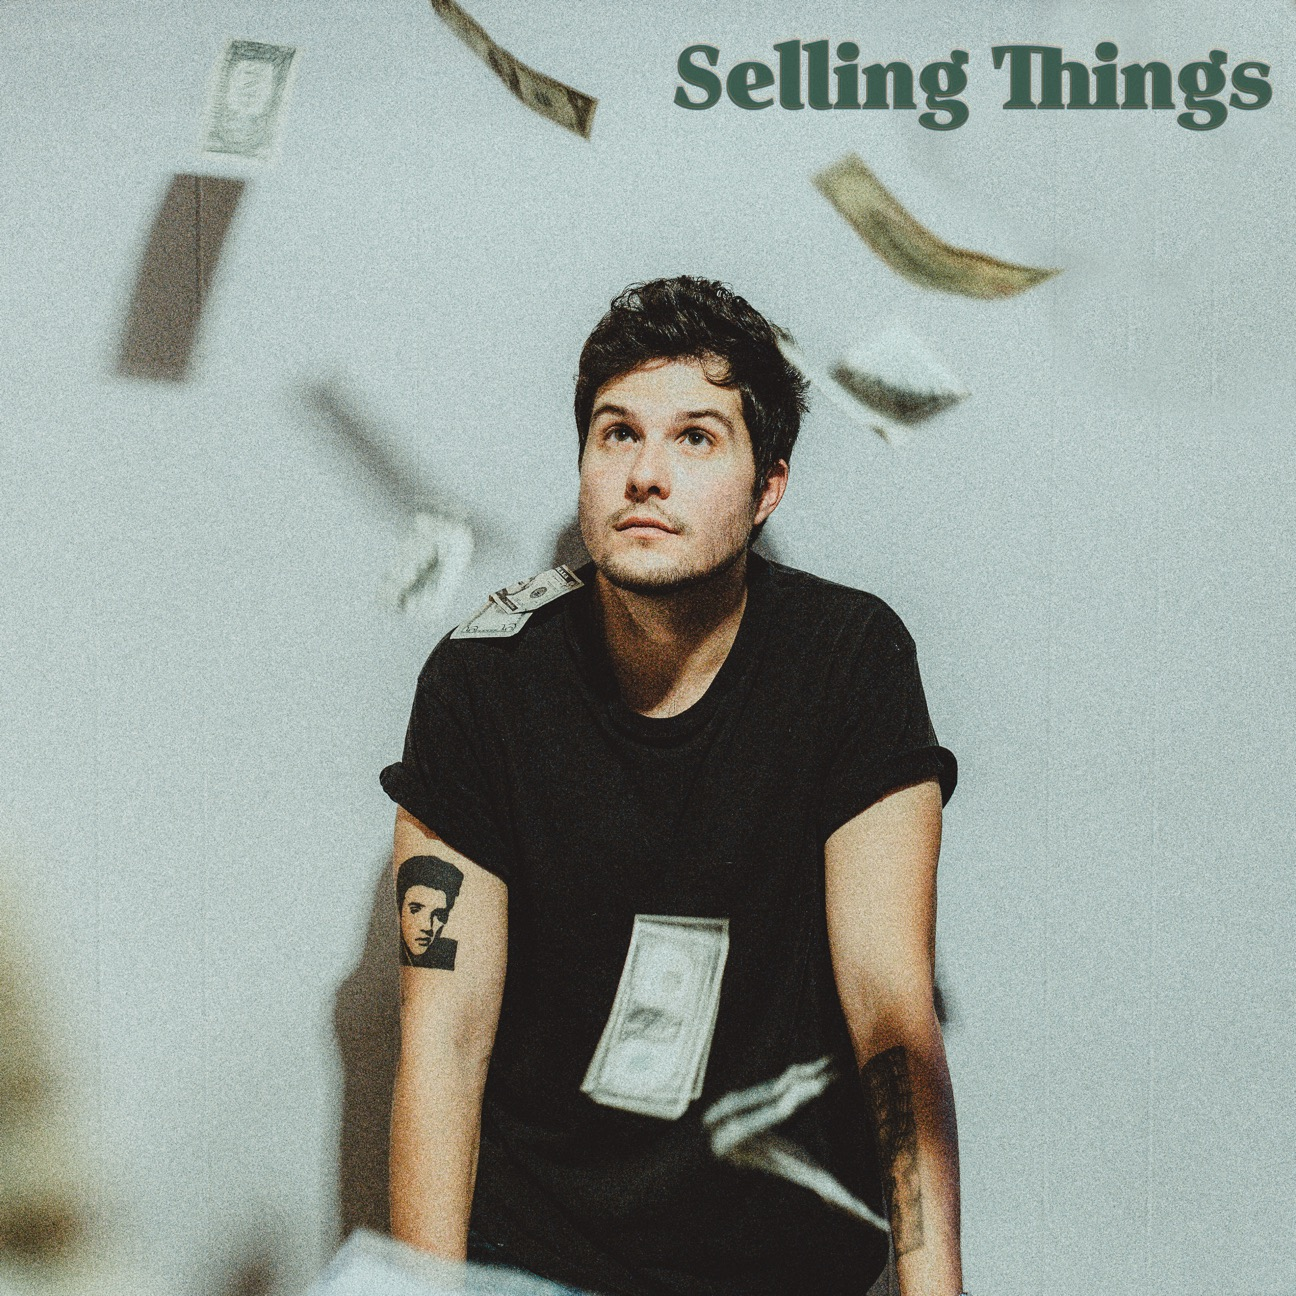 Selling Things - Brian Dunne